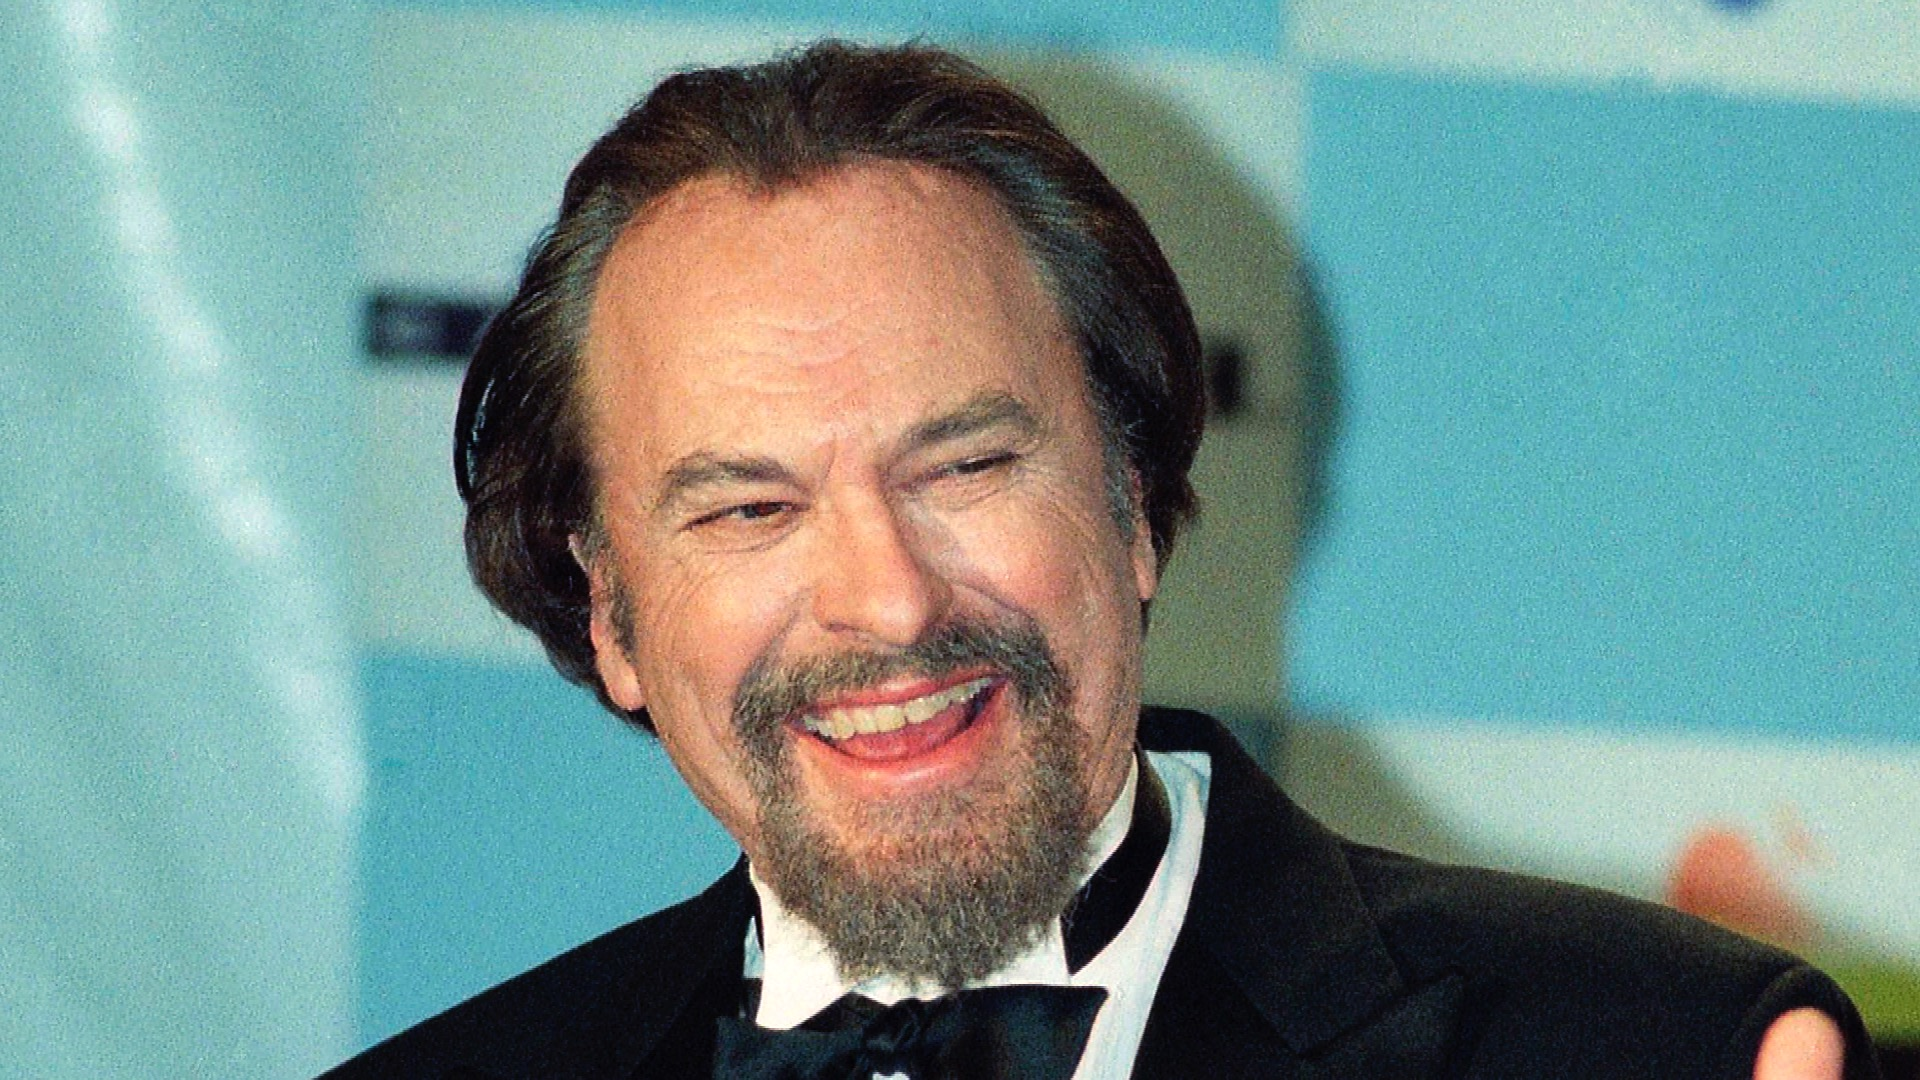 Longtime Actor Rip Torn's Cause of Death Revealed 5 Months After Death